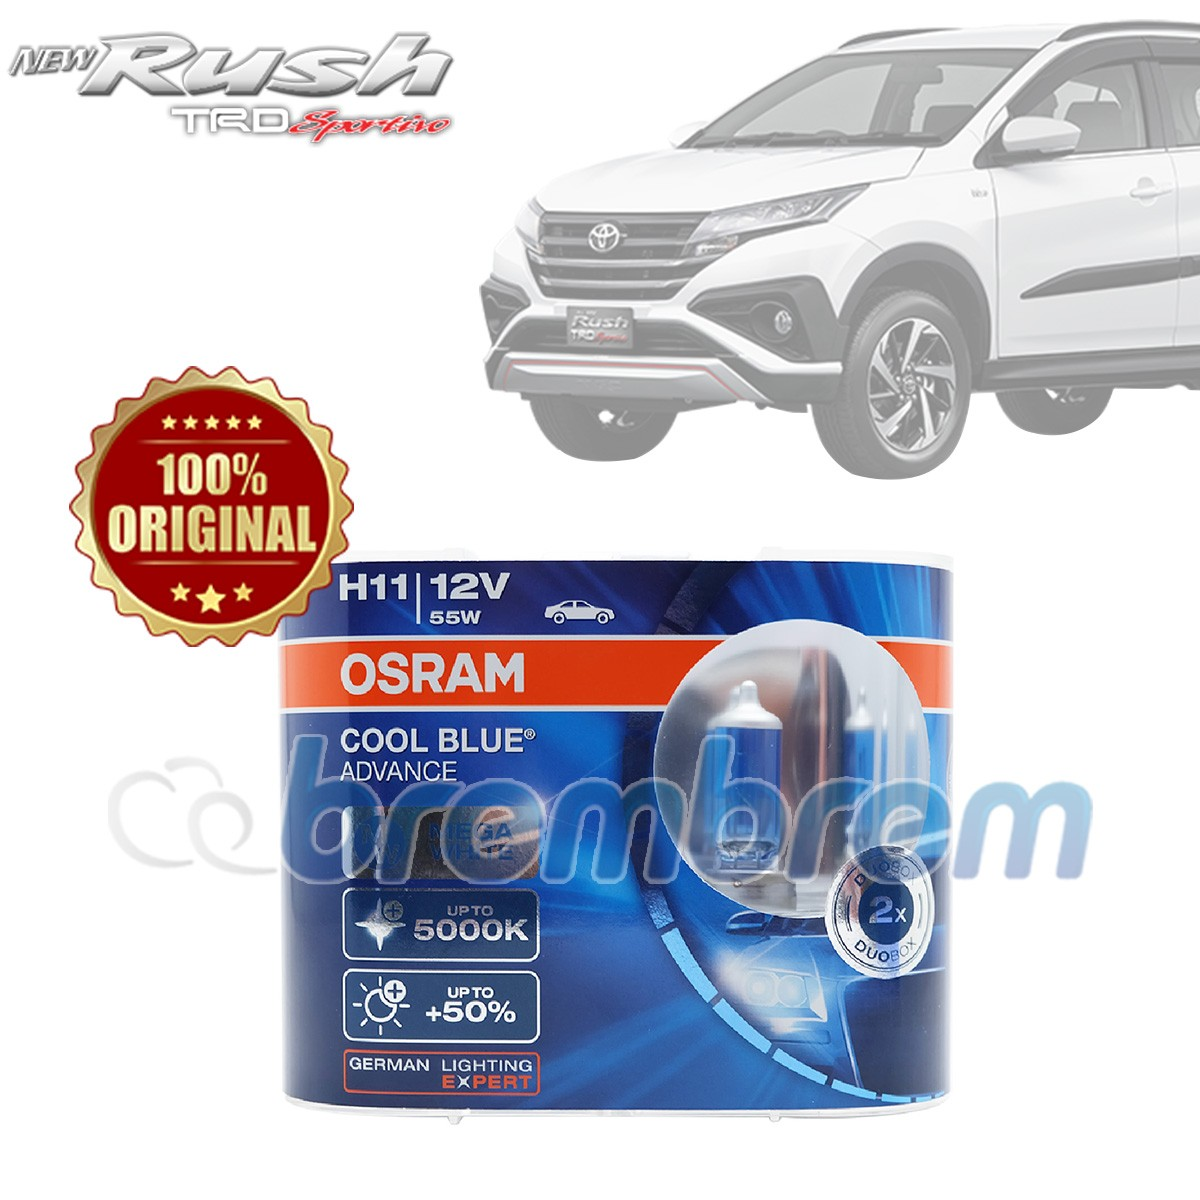 OSRAM COOL BLUE ADVANCE H11 (5000K) - LAMPU HALOGEN TOYOTA ALL NEW RUSH